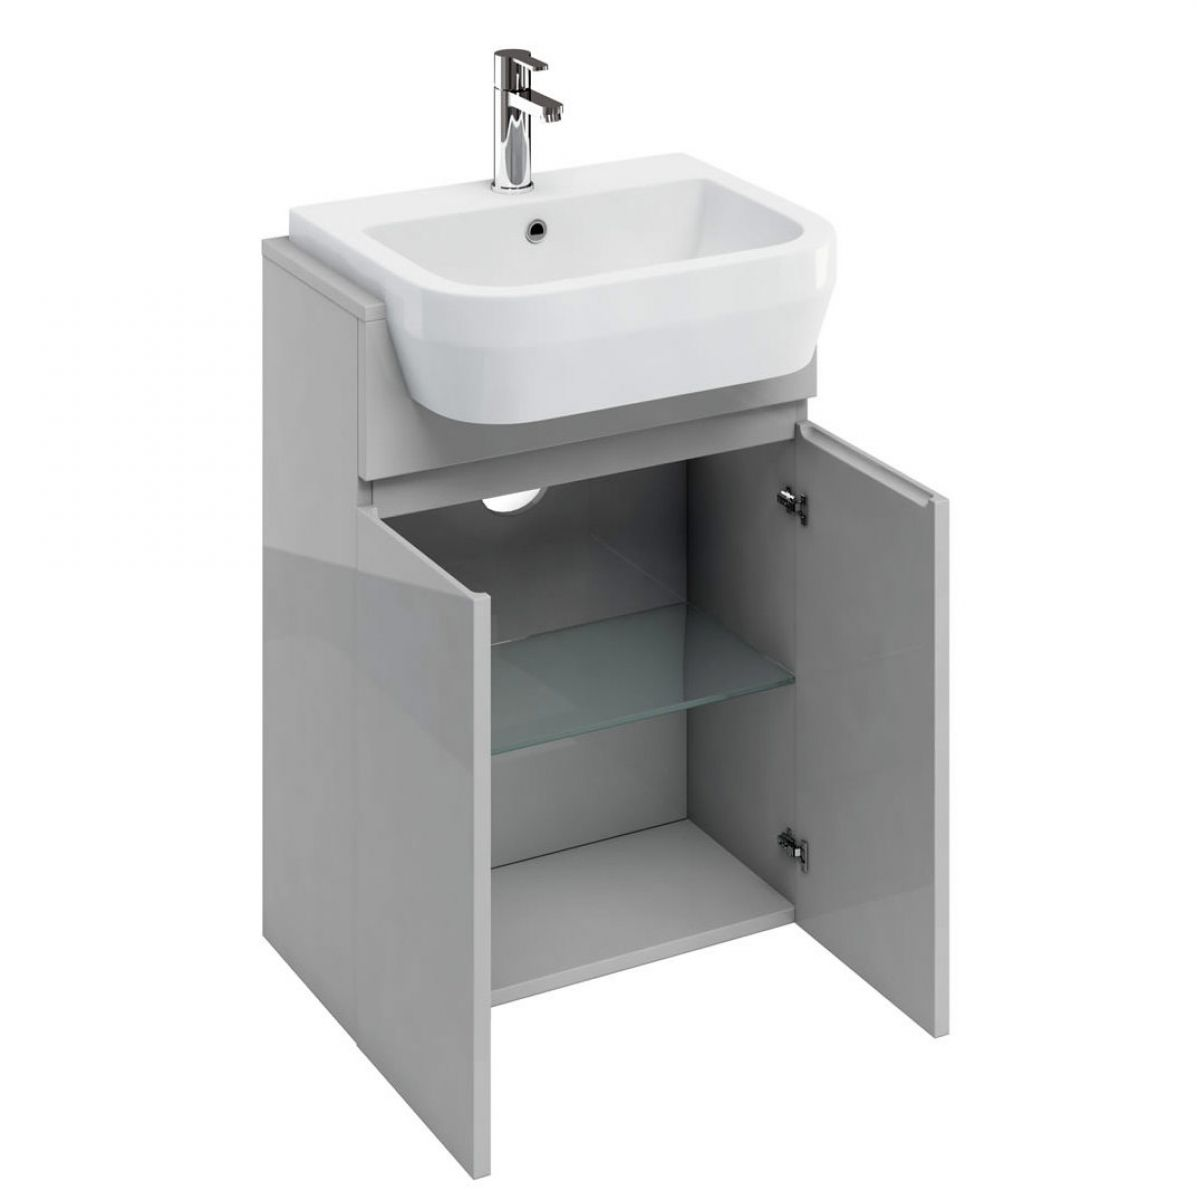 Semi Recessed Bathroom Sink Unit